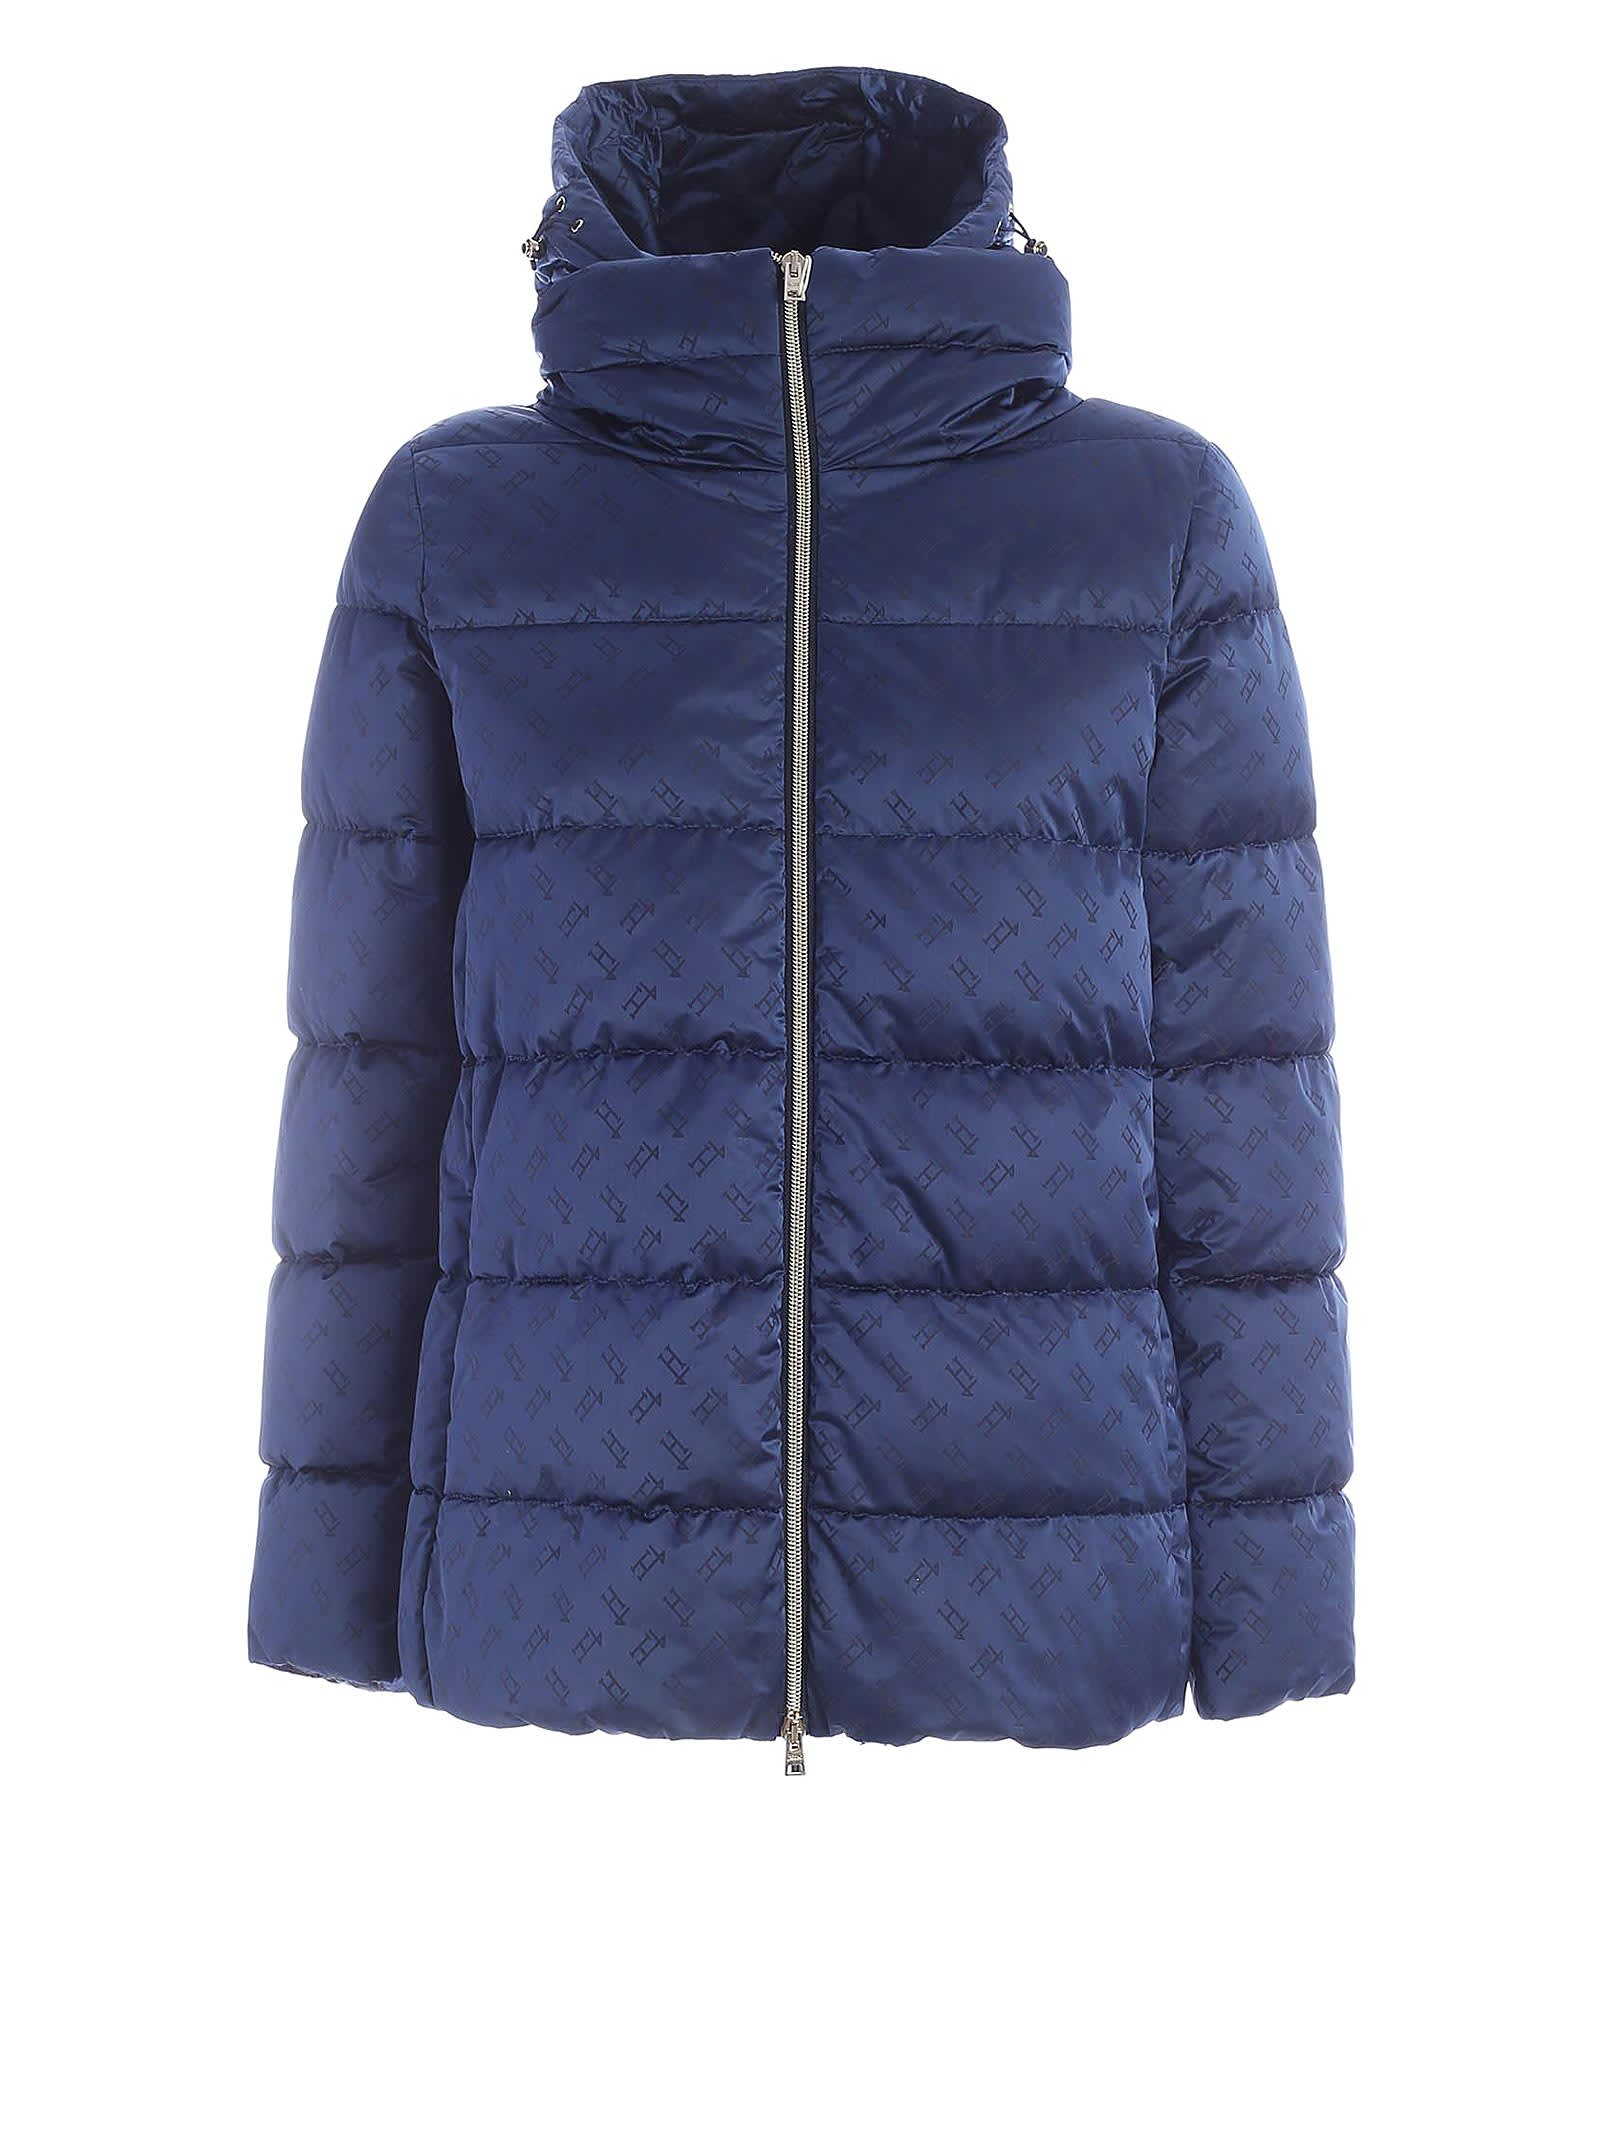 Herno Herno Blue Down Jacket